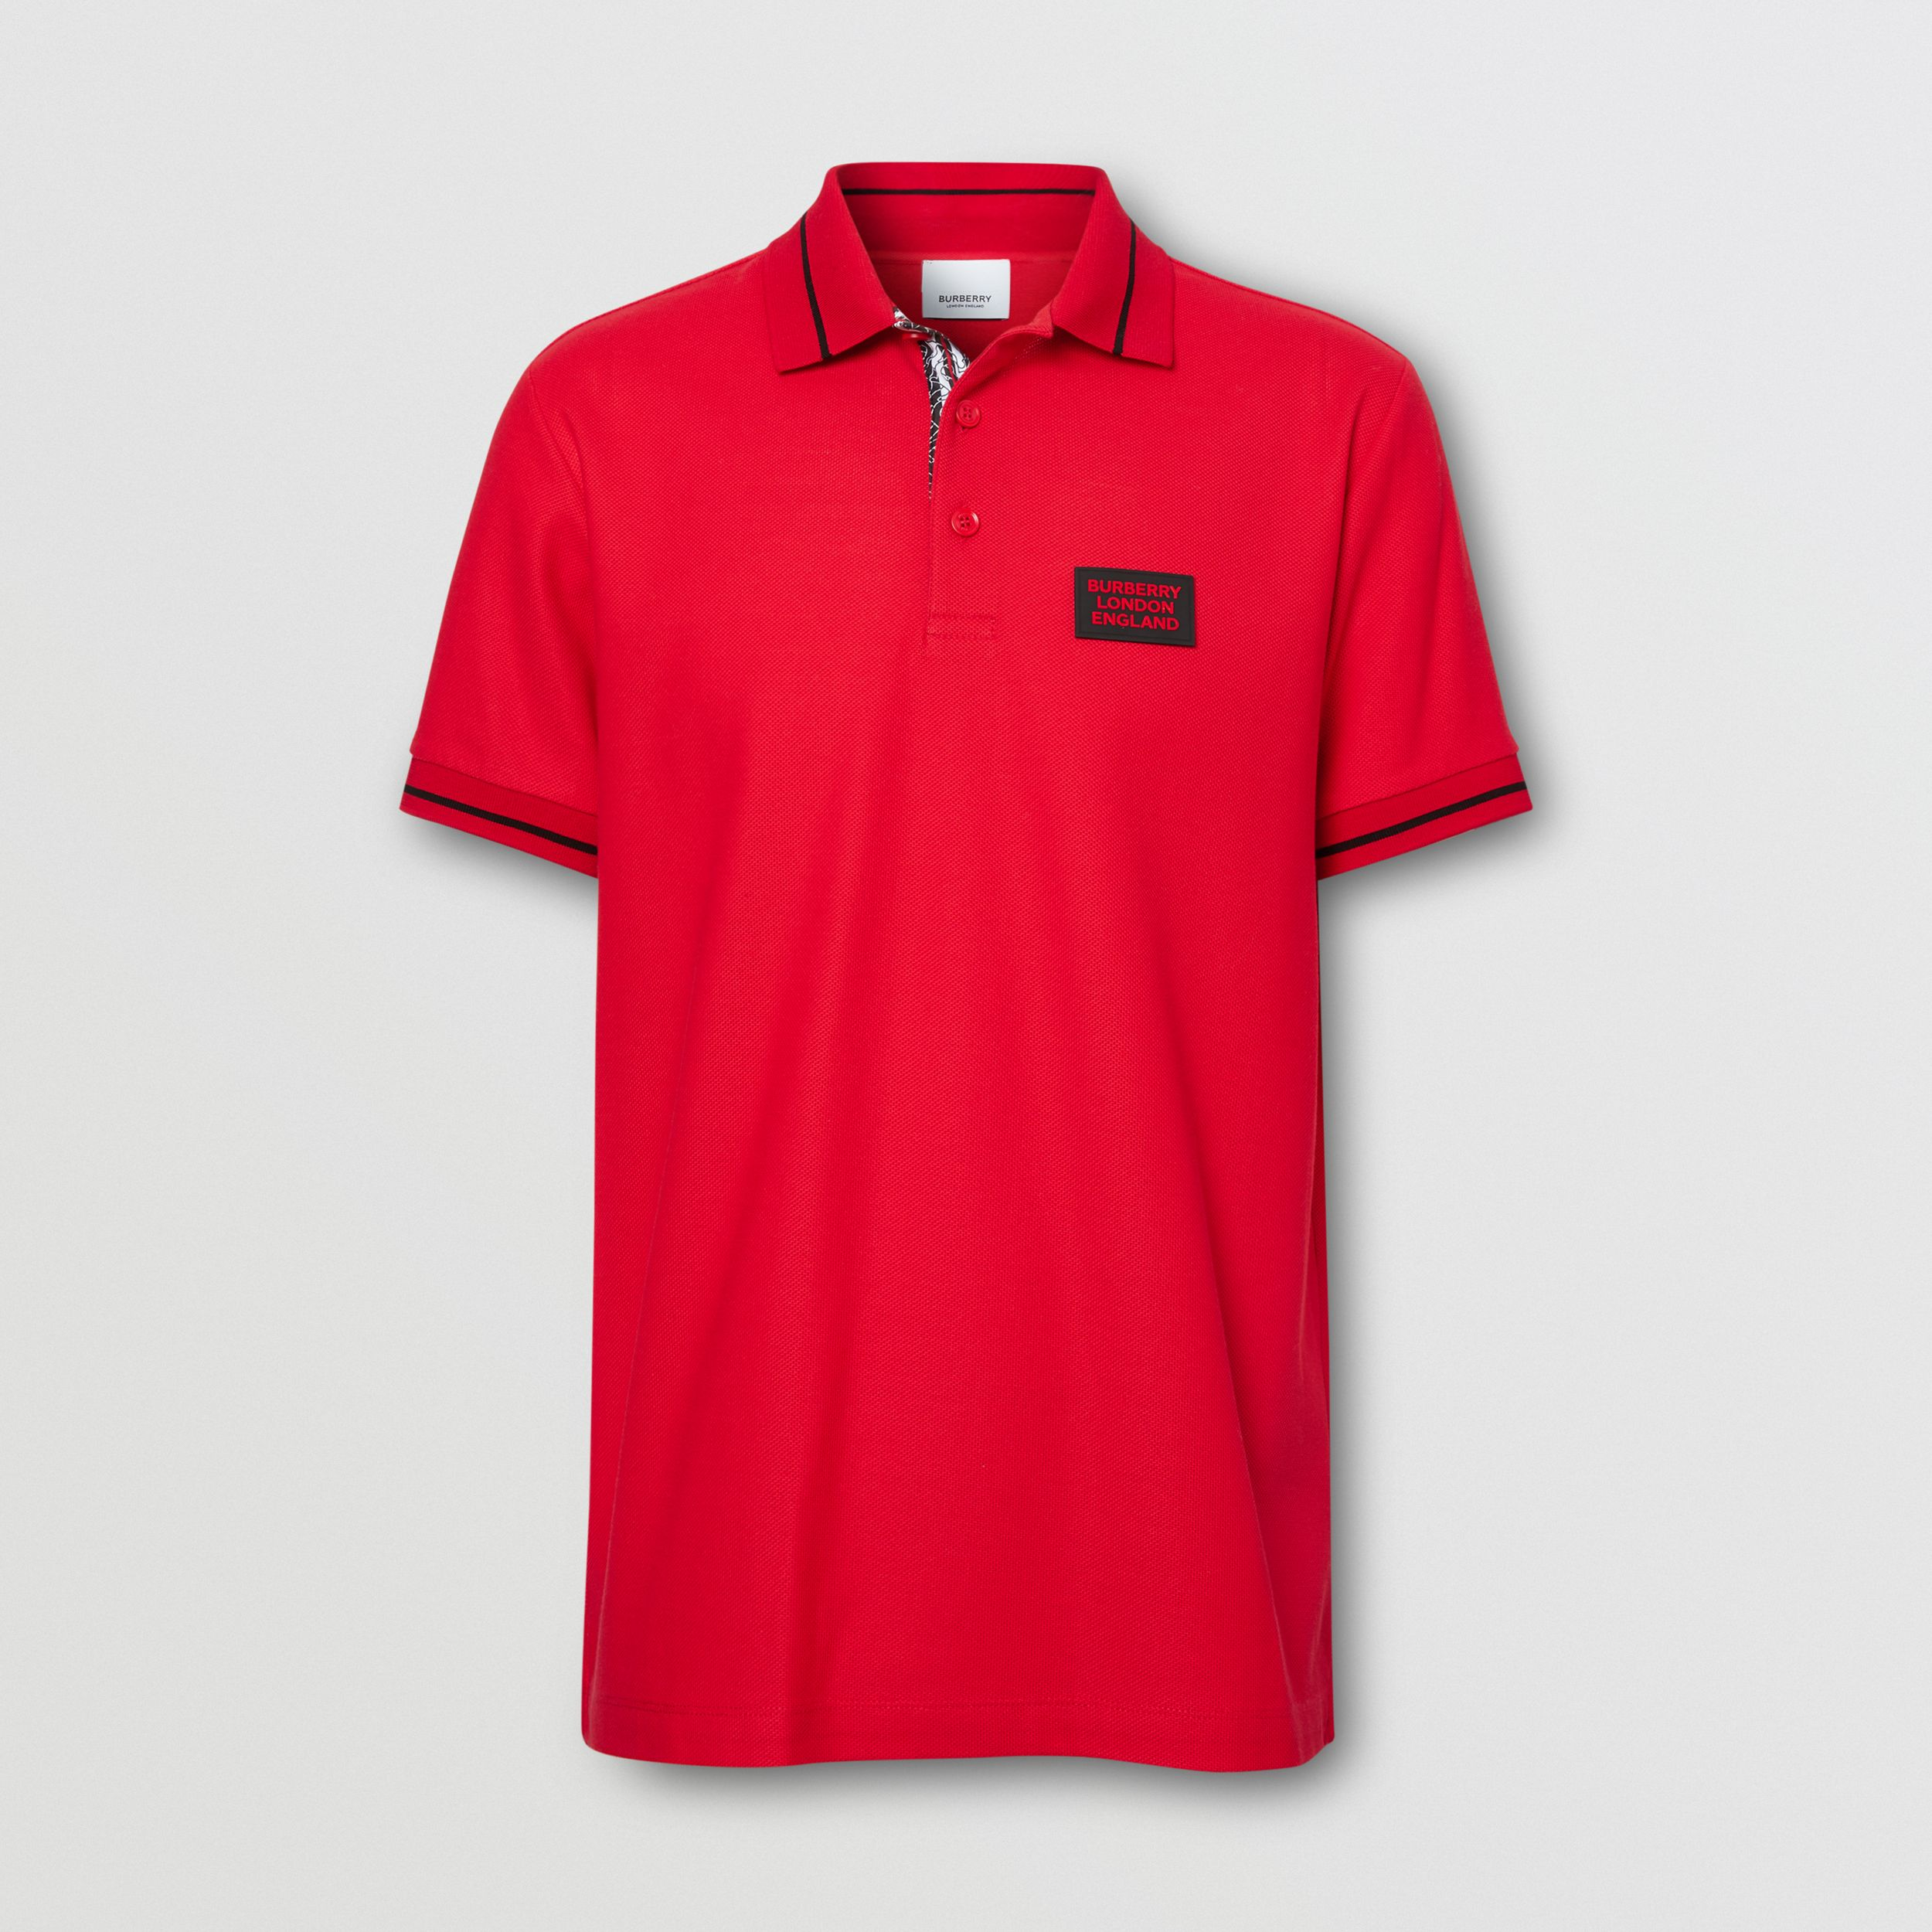 Logo Appliqué Cotton Piqué Polo Shirt in Bright Red - Men | Burberry - 4